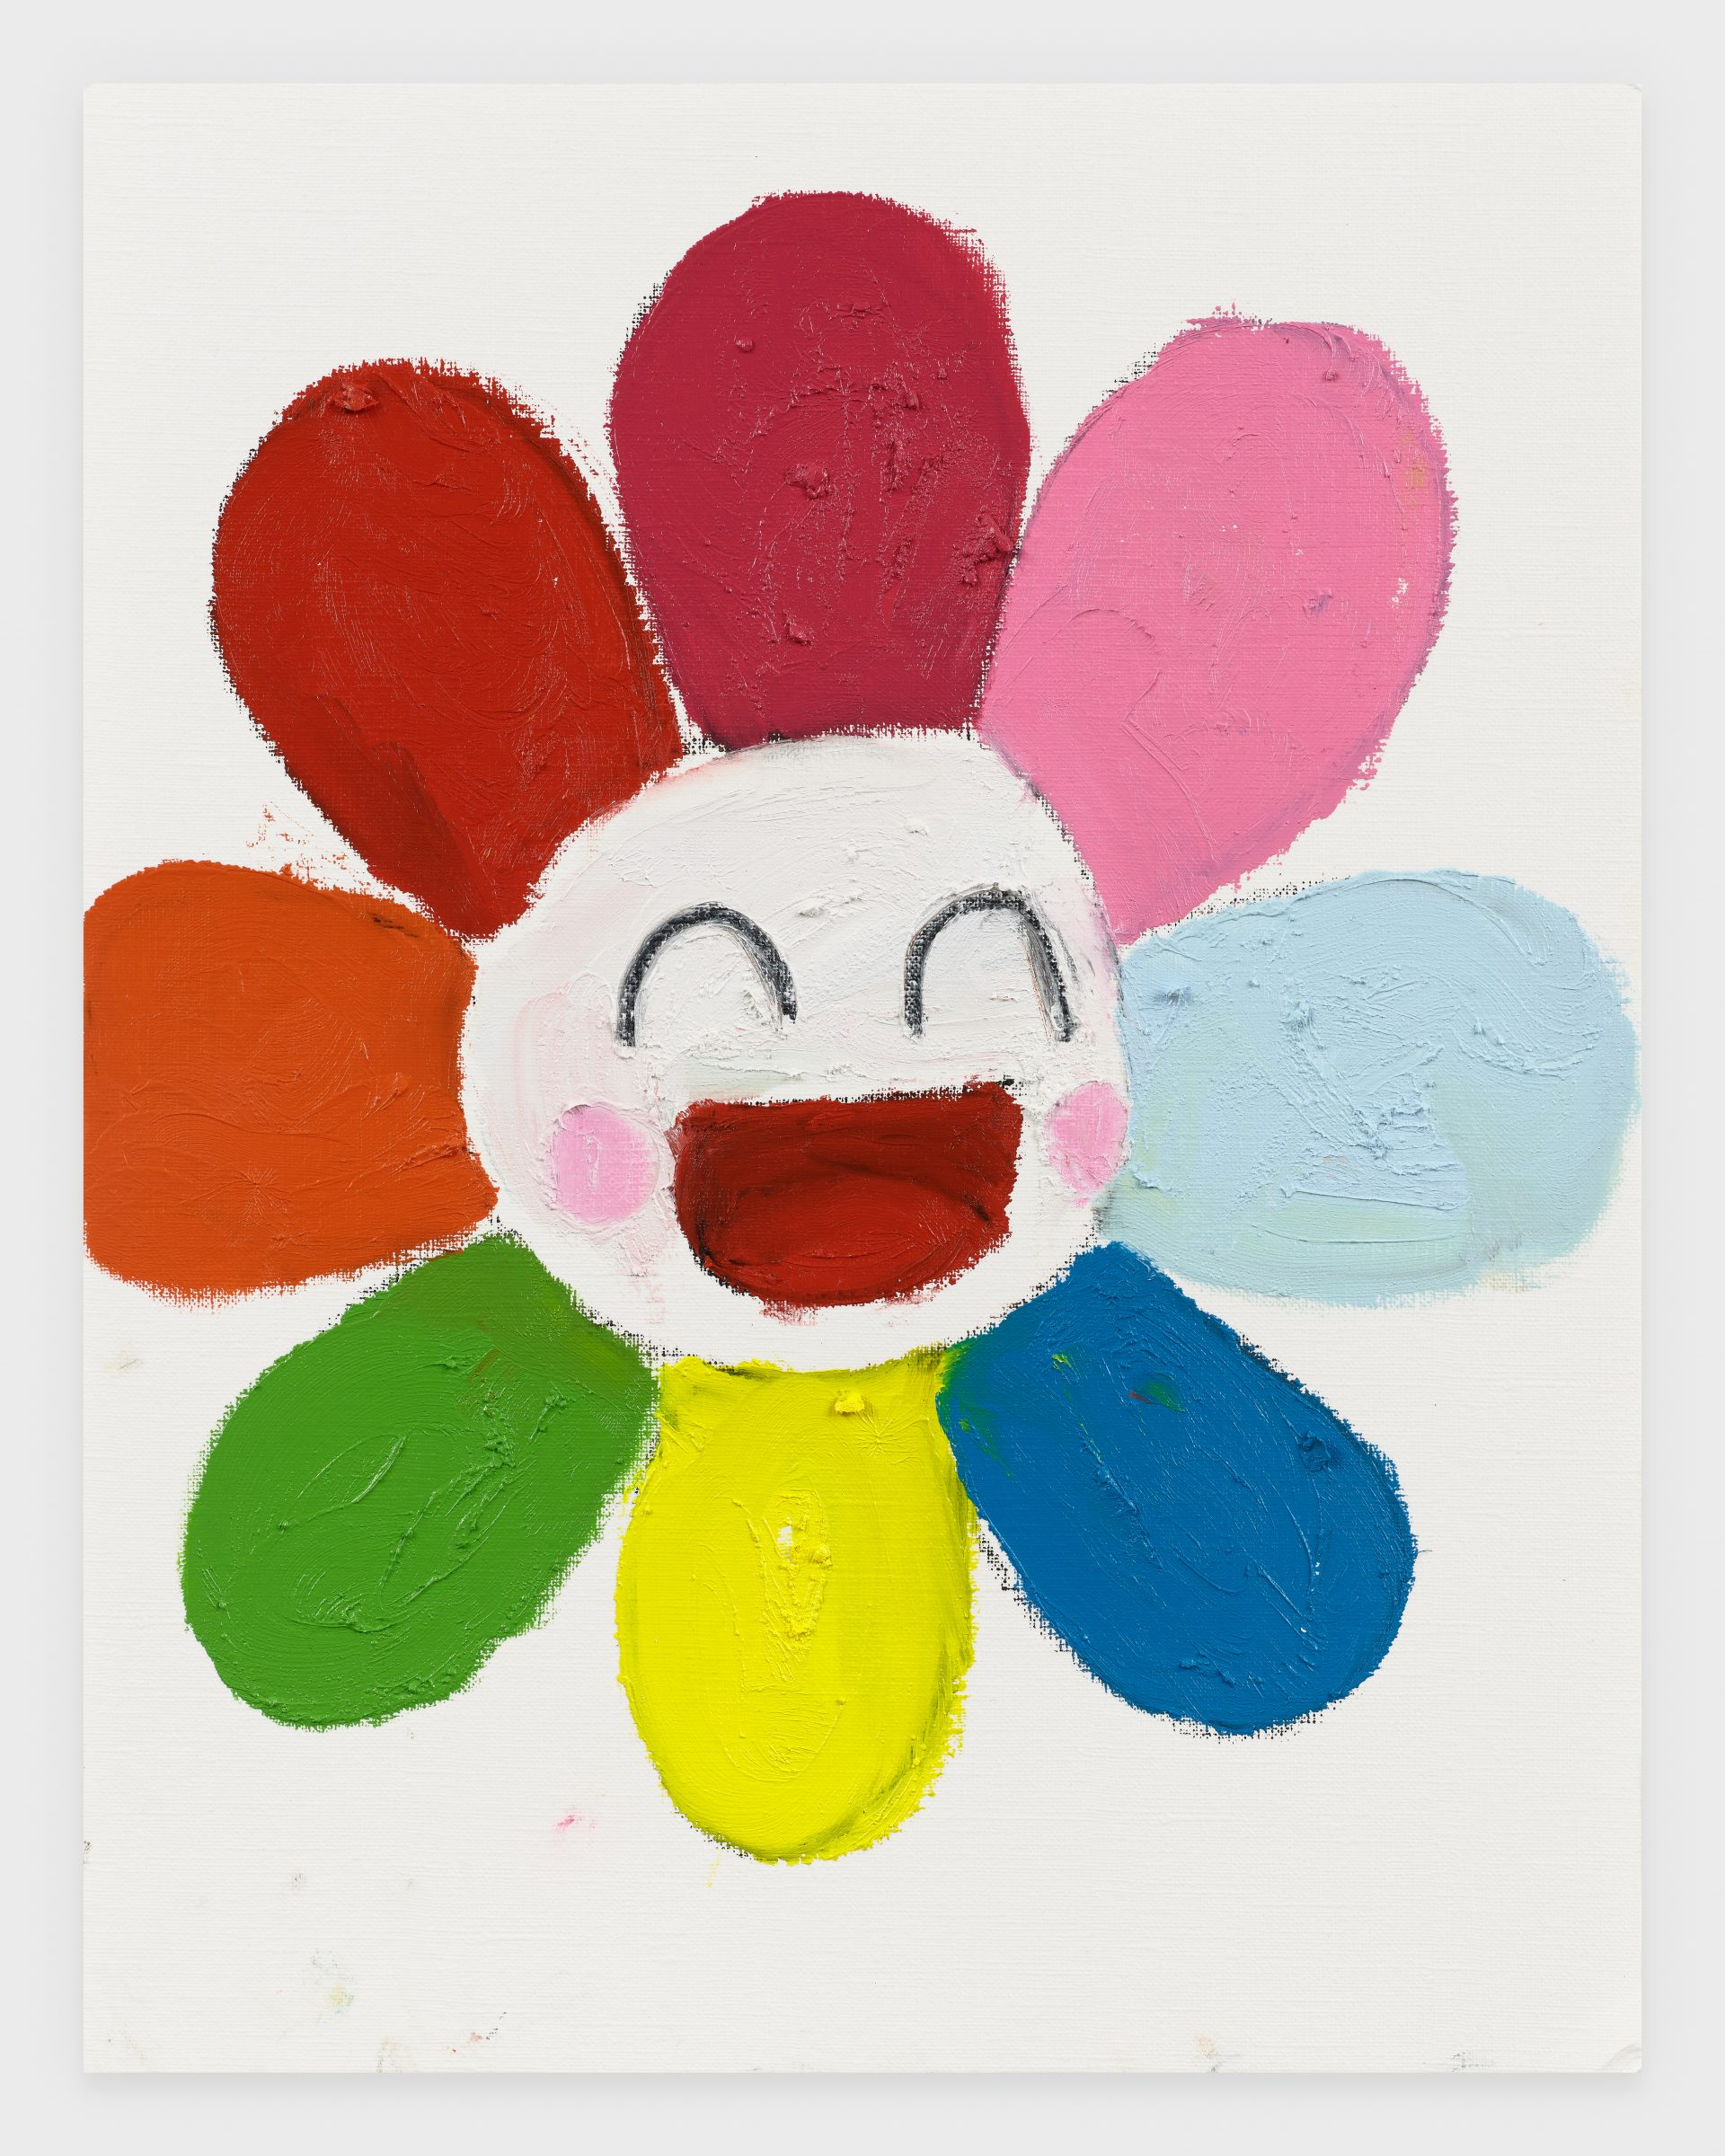 Murakami Flower, 2020, Oil stick on archival paper, 11 x 14 inches